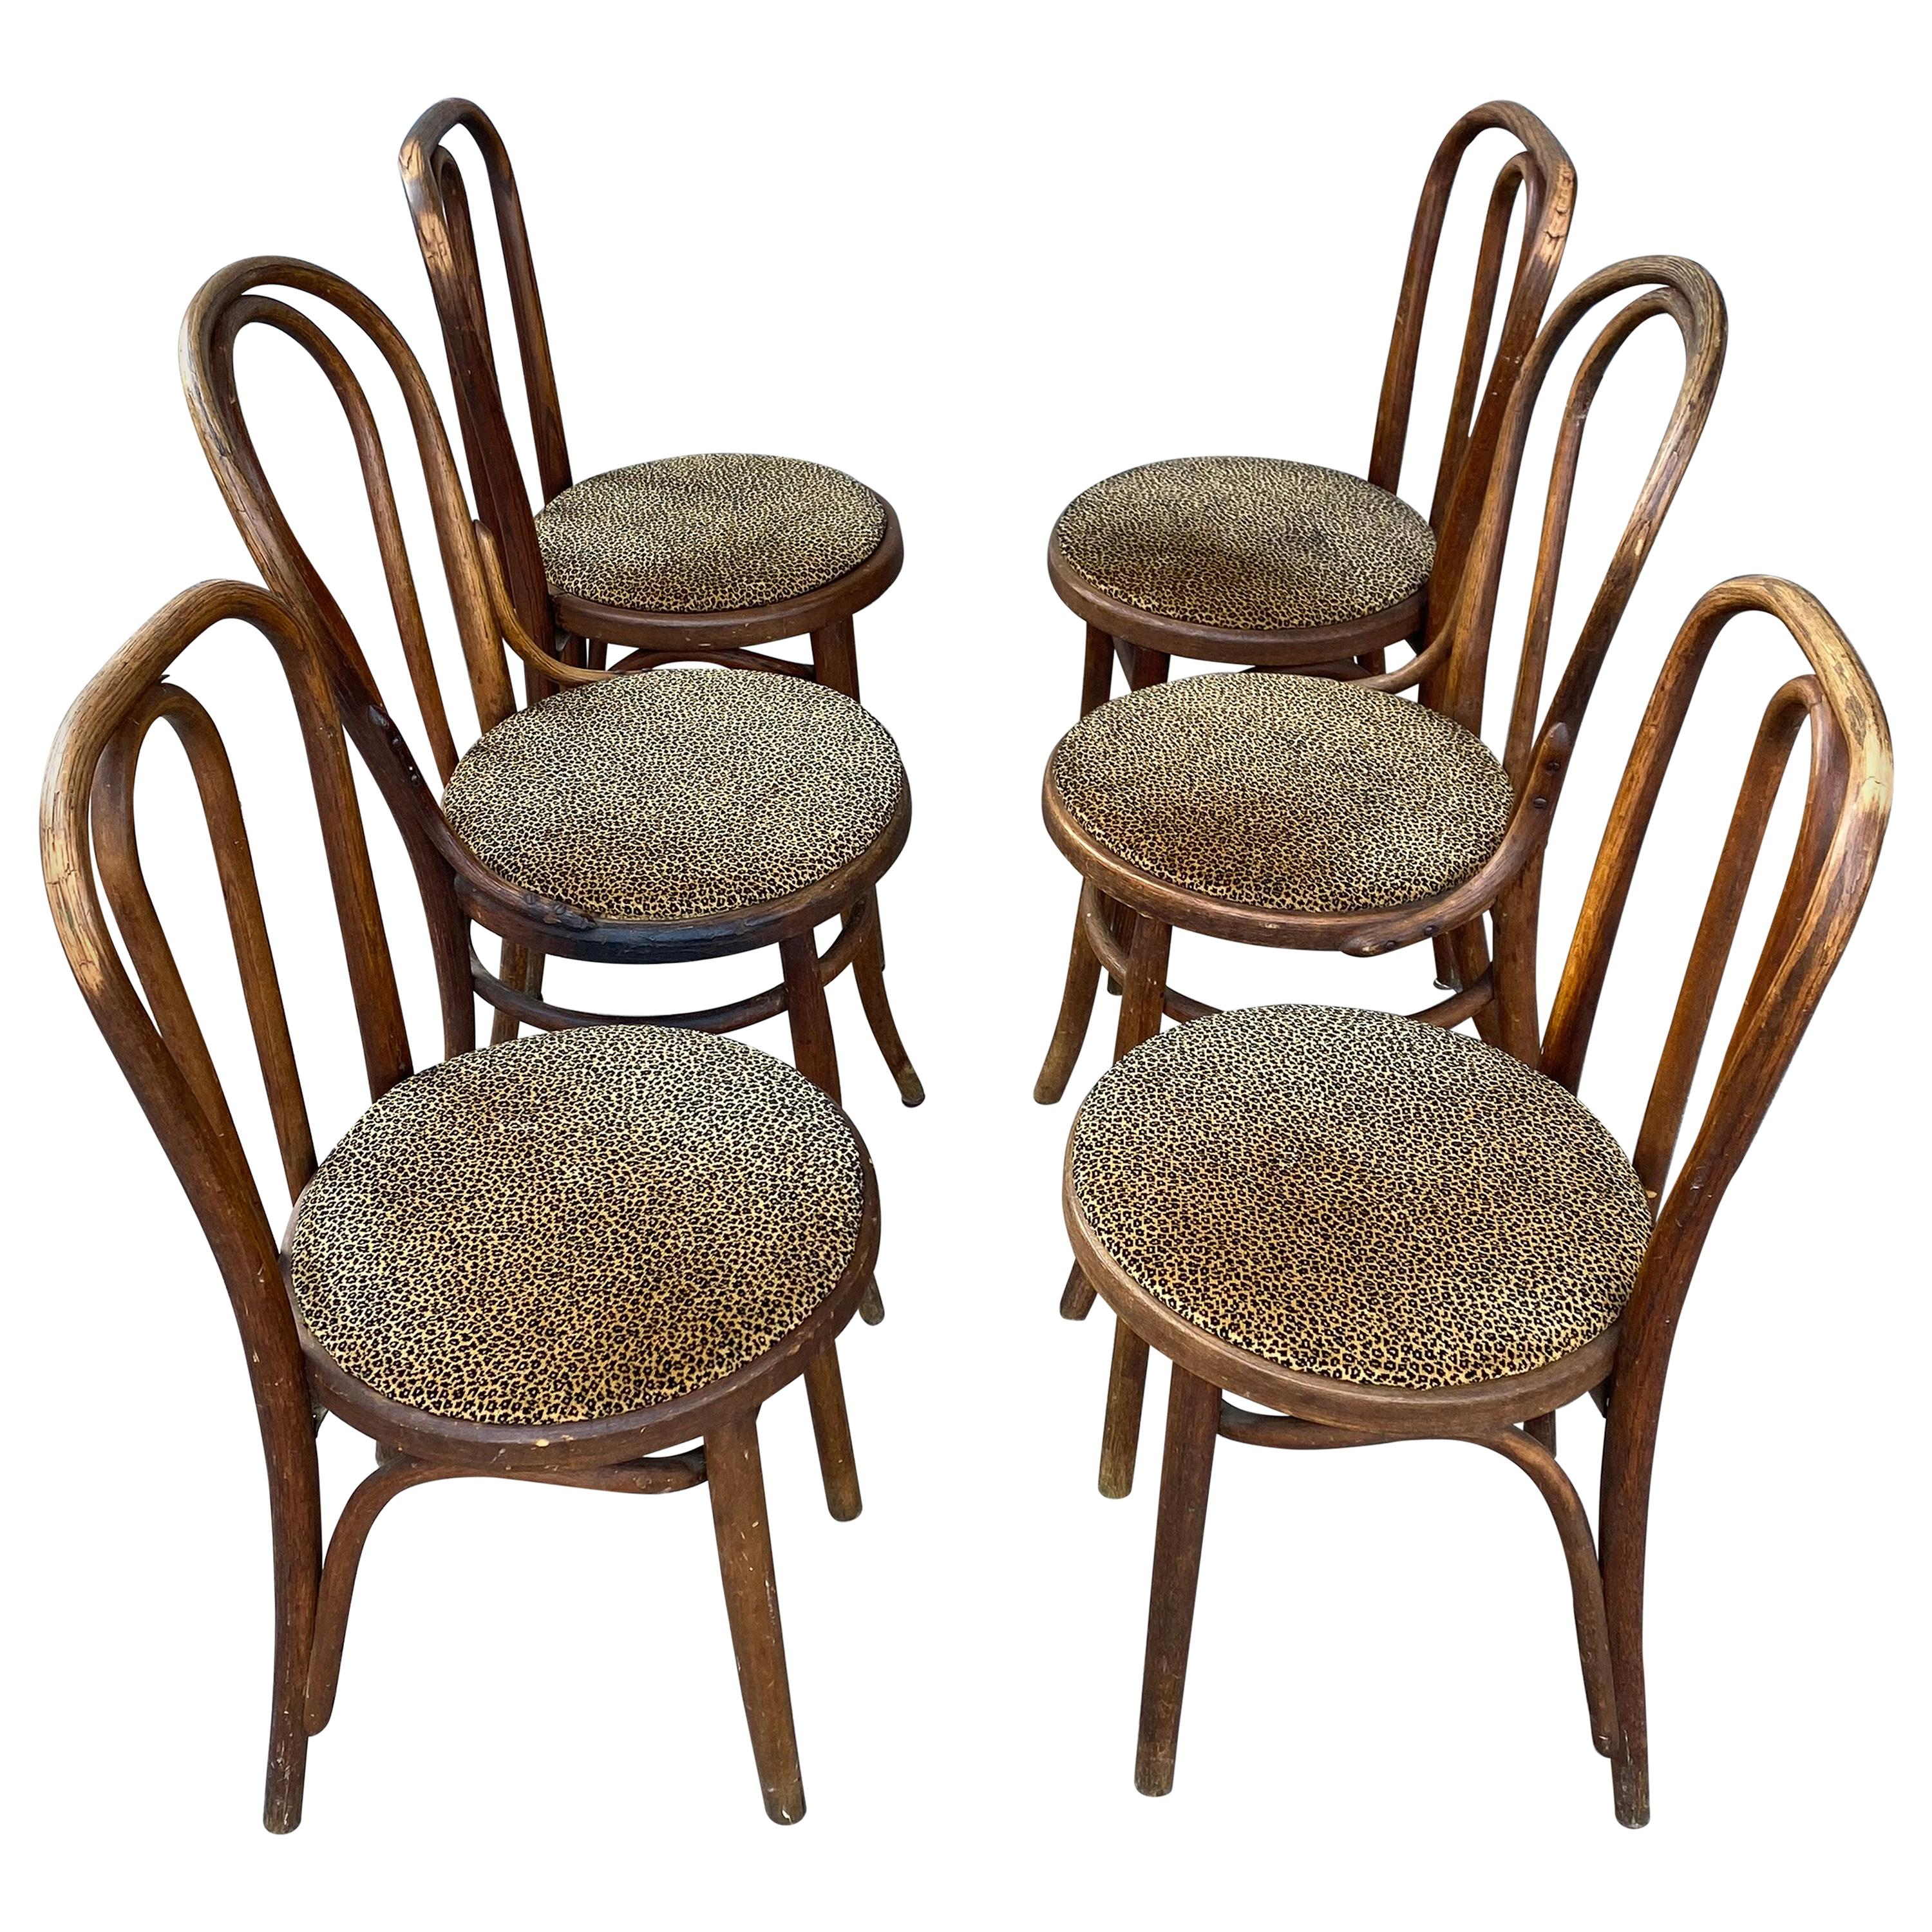 Classic Set of 6 Bentwood Cafe Dining Chairs, Attributed to Thonet